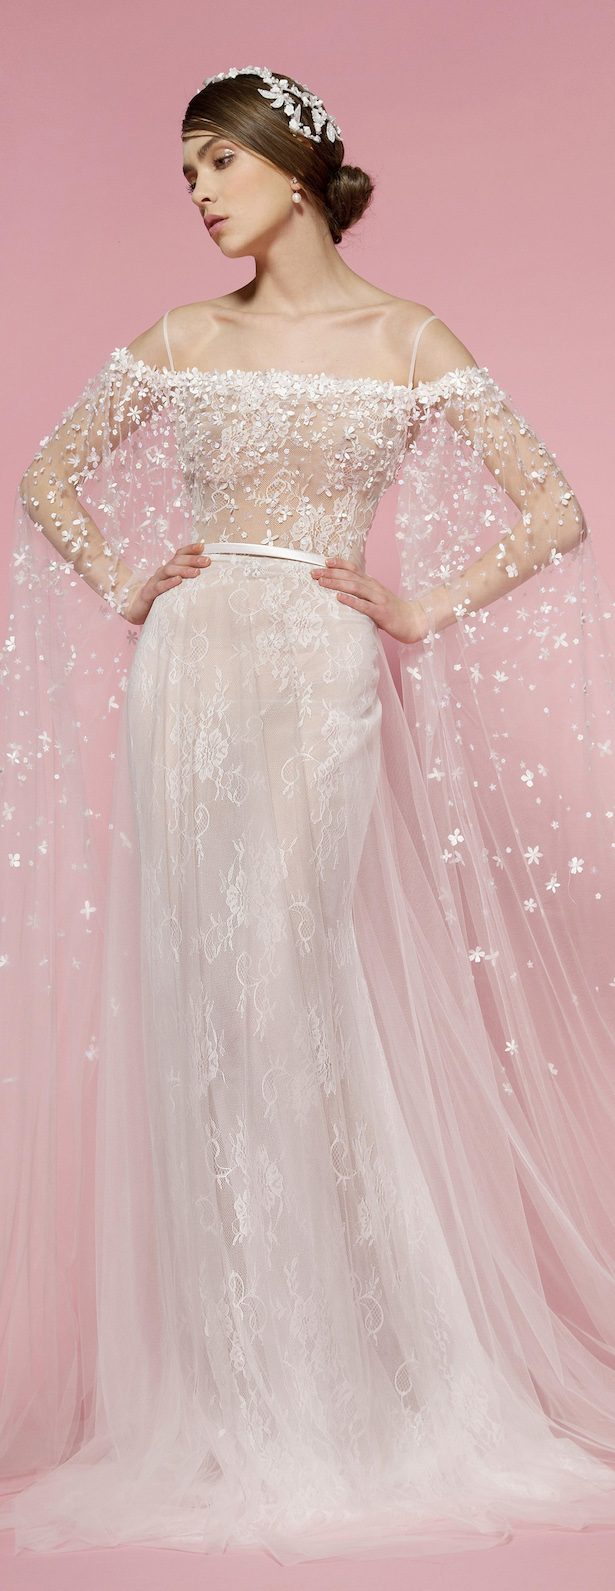 Georges Hobeika Bridal 2018